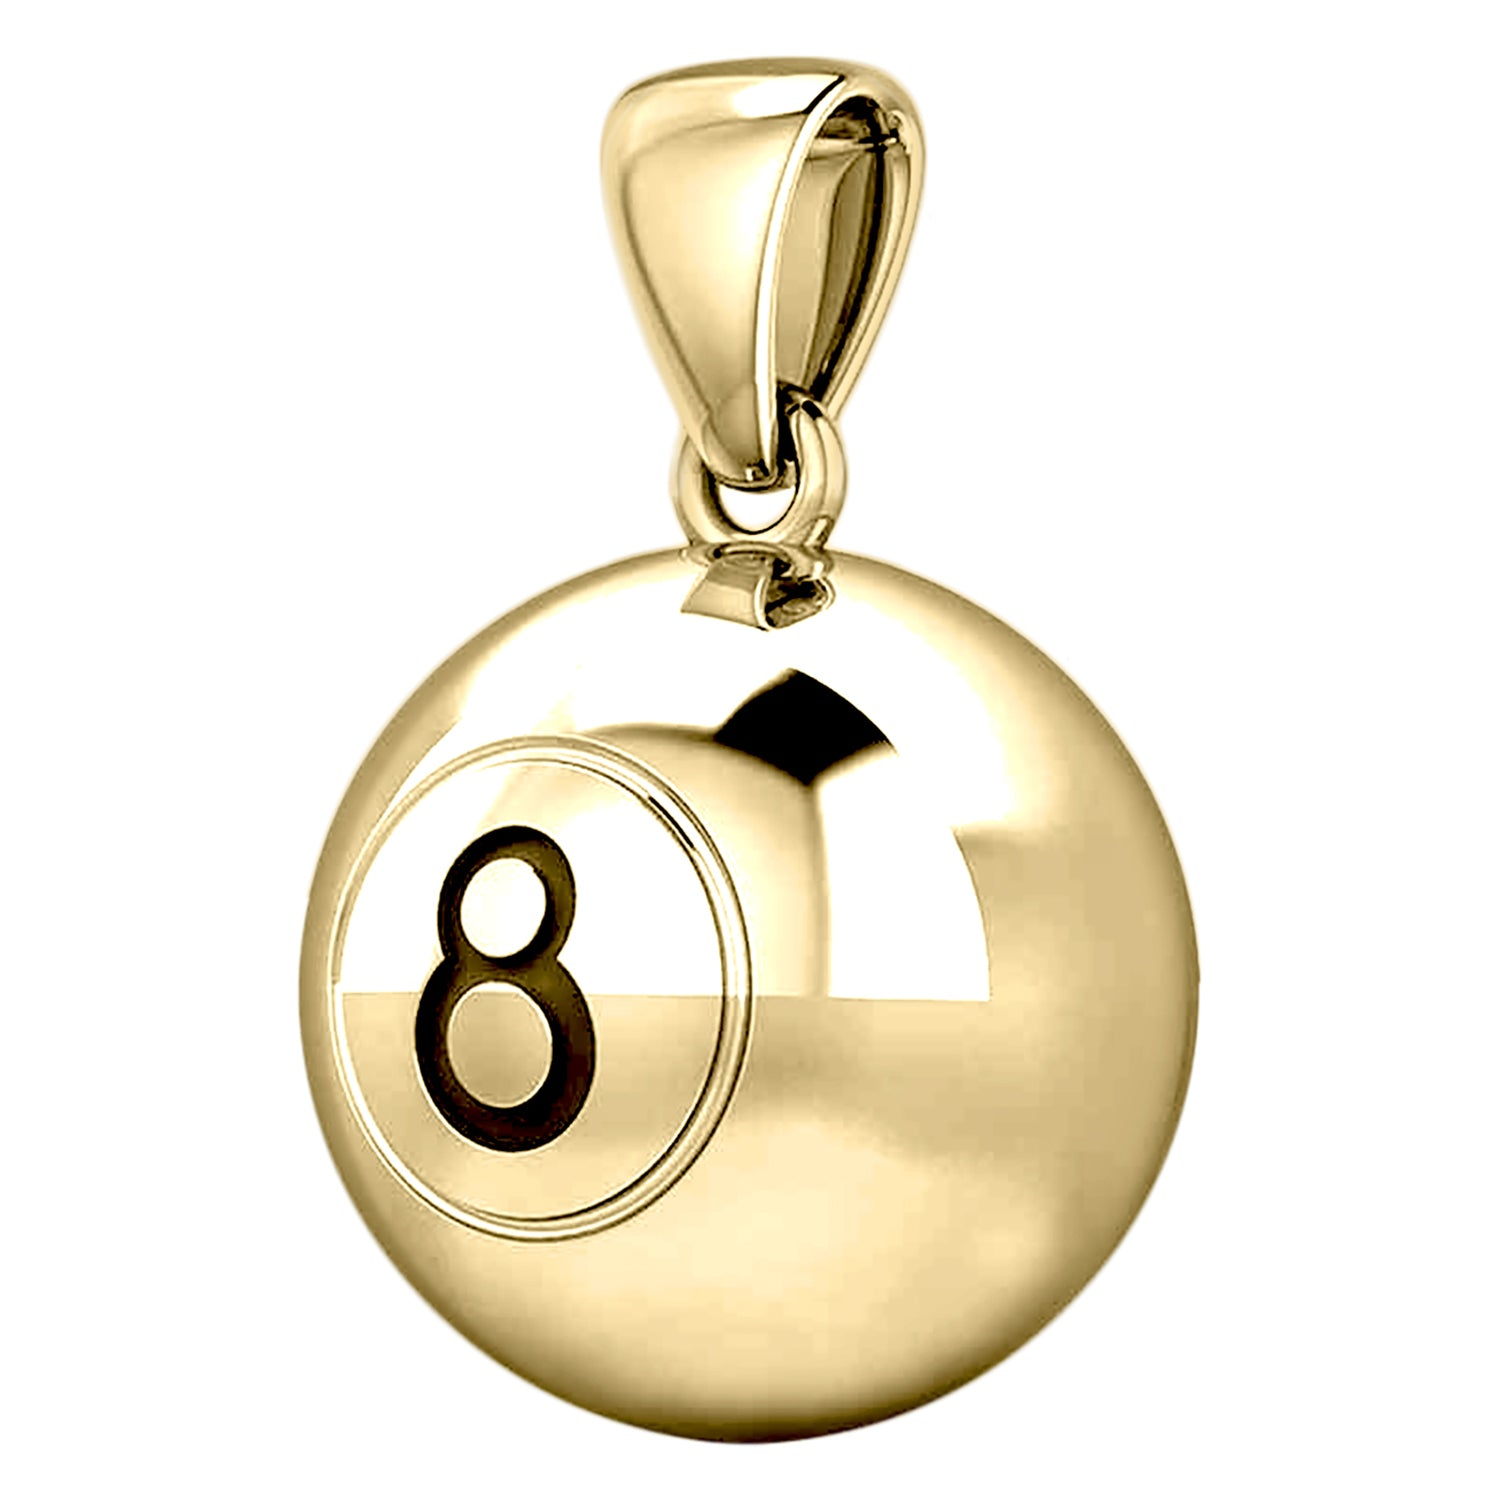 Yellow Gold 3D Eight 8 Ball Billiards Pendant Necklace